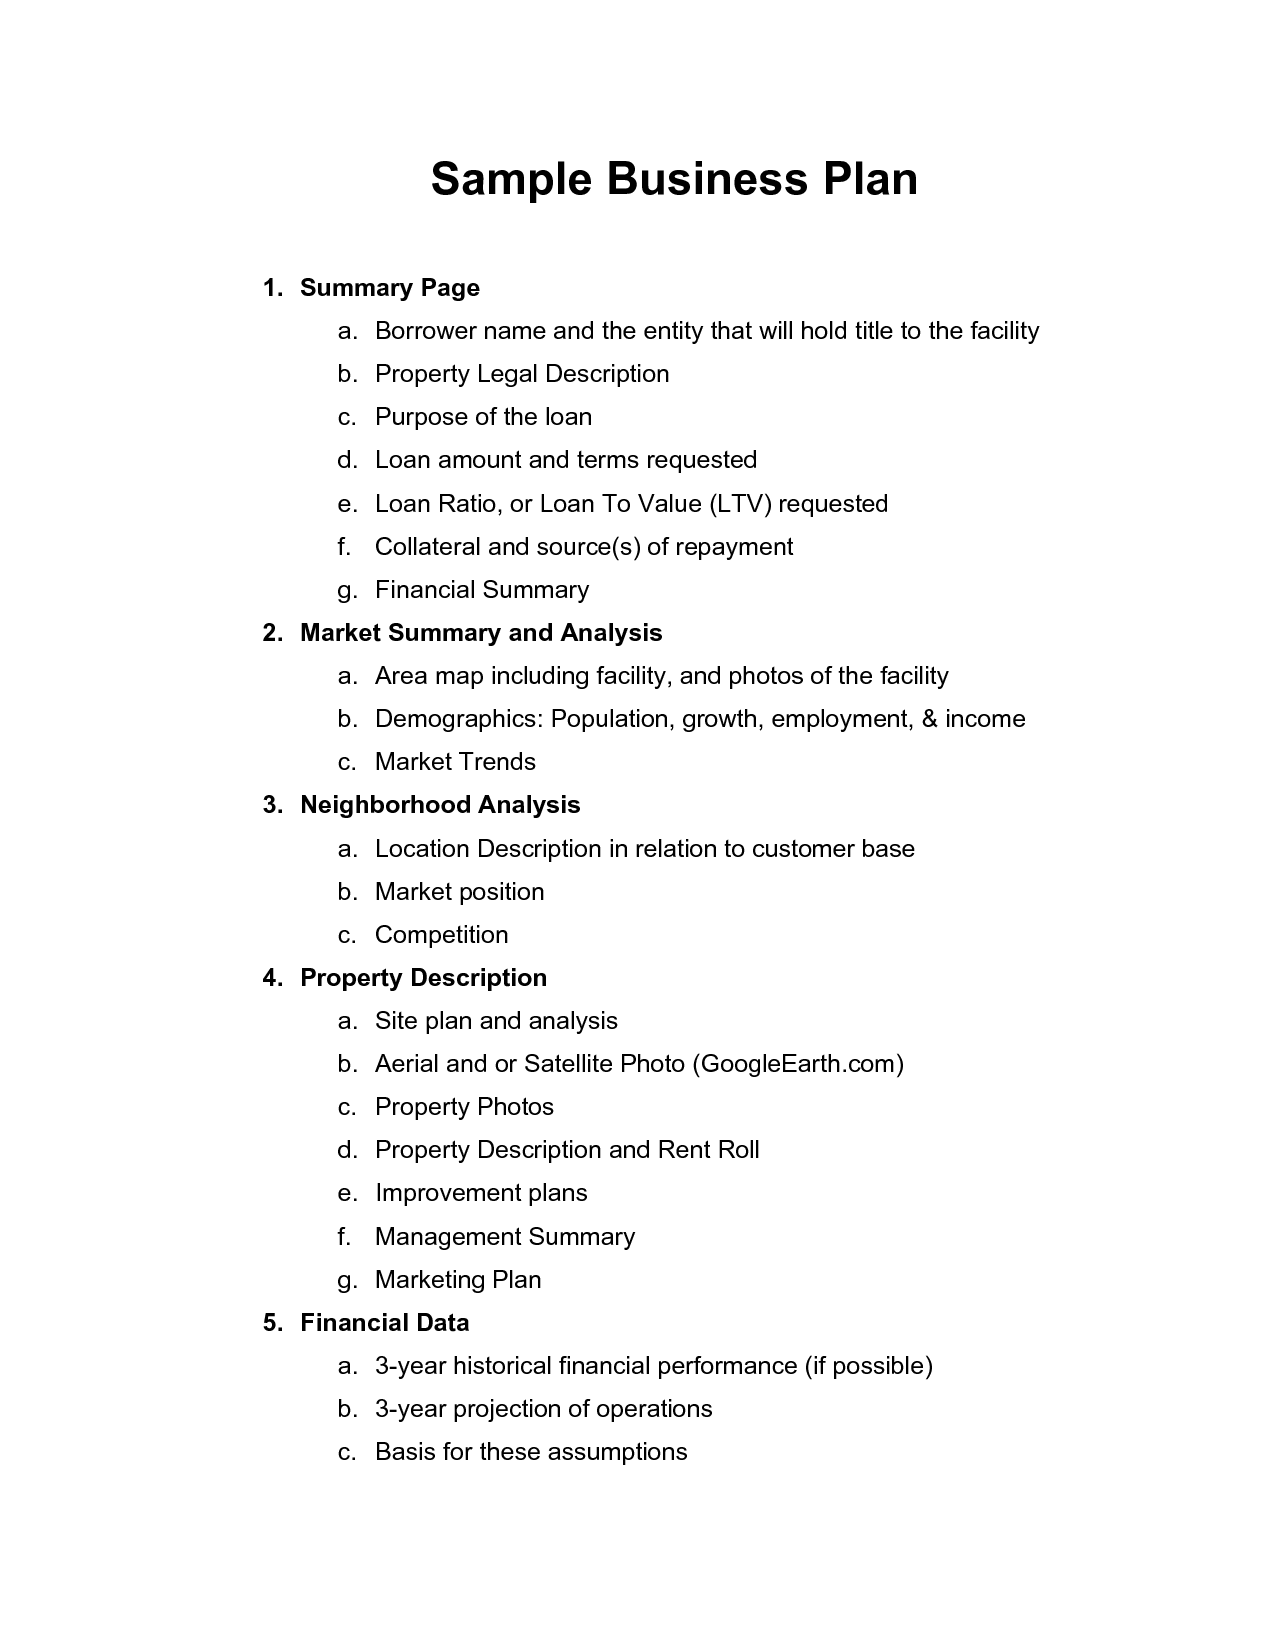 Printable Sample Business Plan Sample Form | Forms and Template